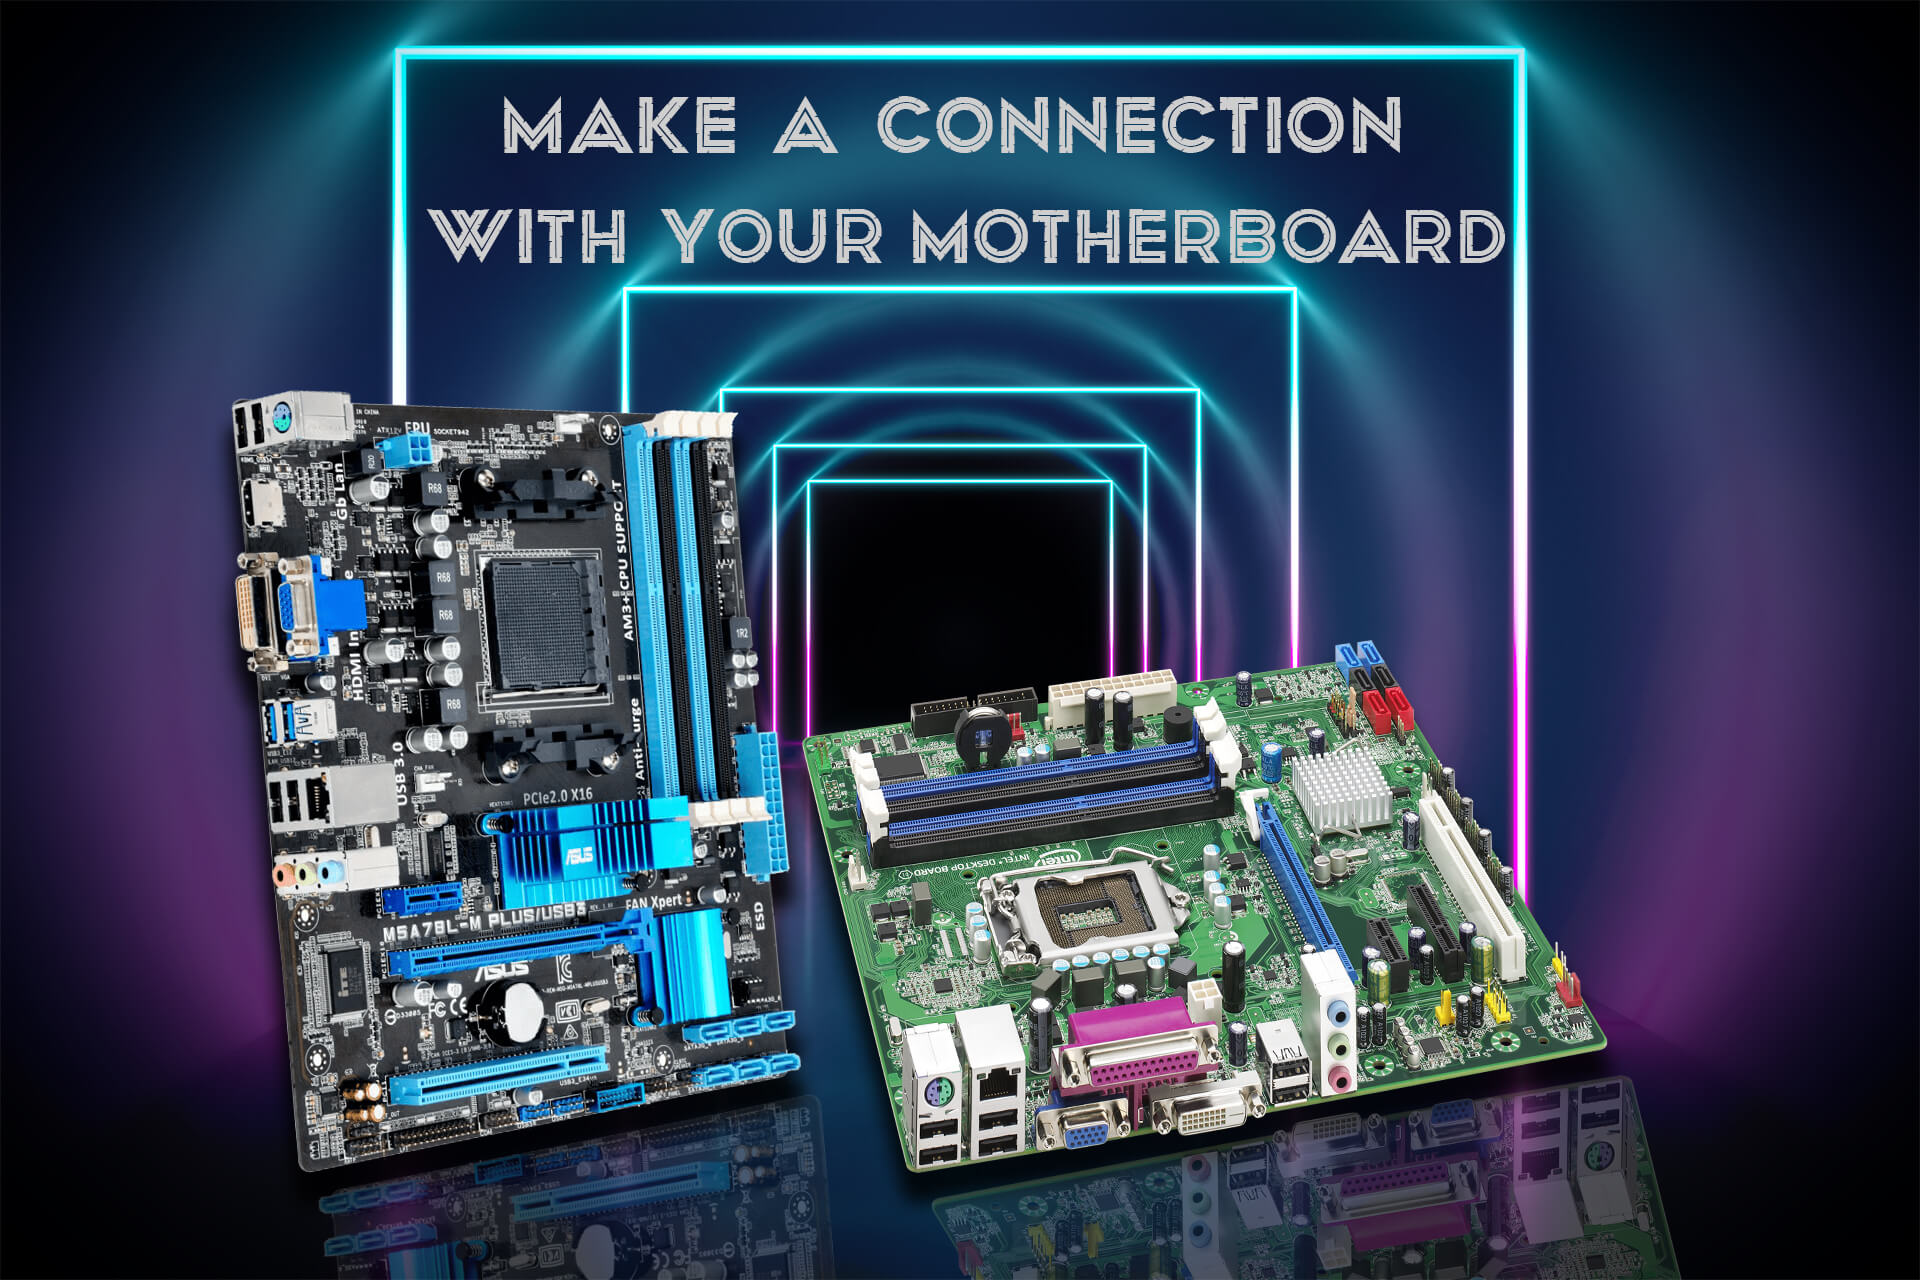 Make a connection with your motherboard